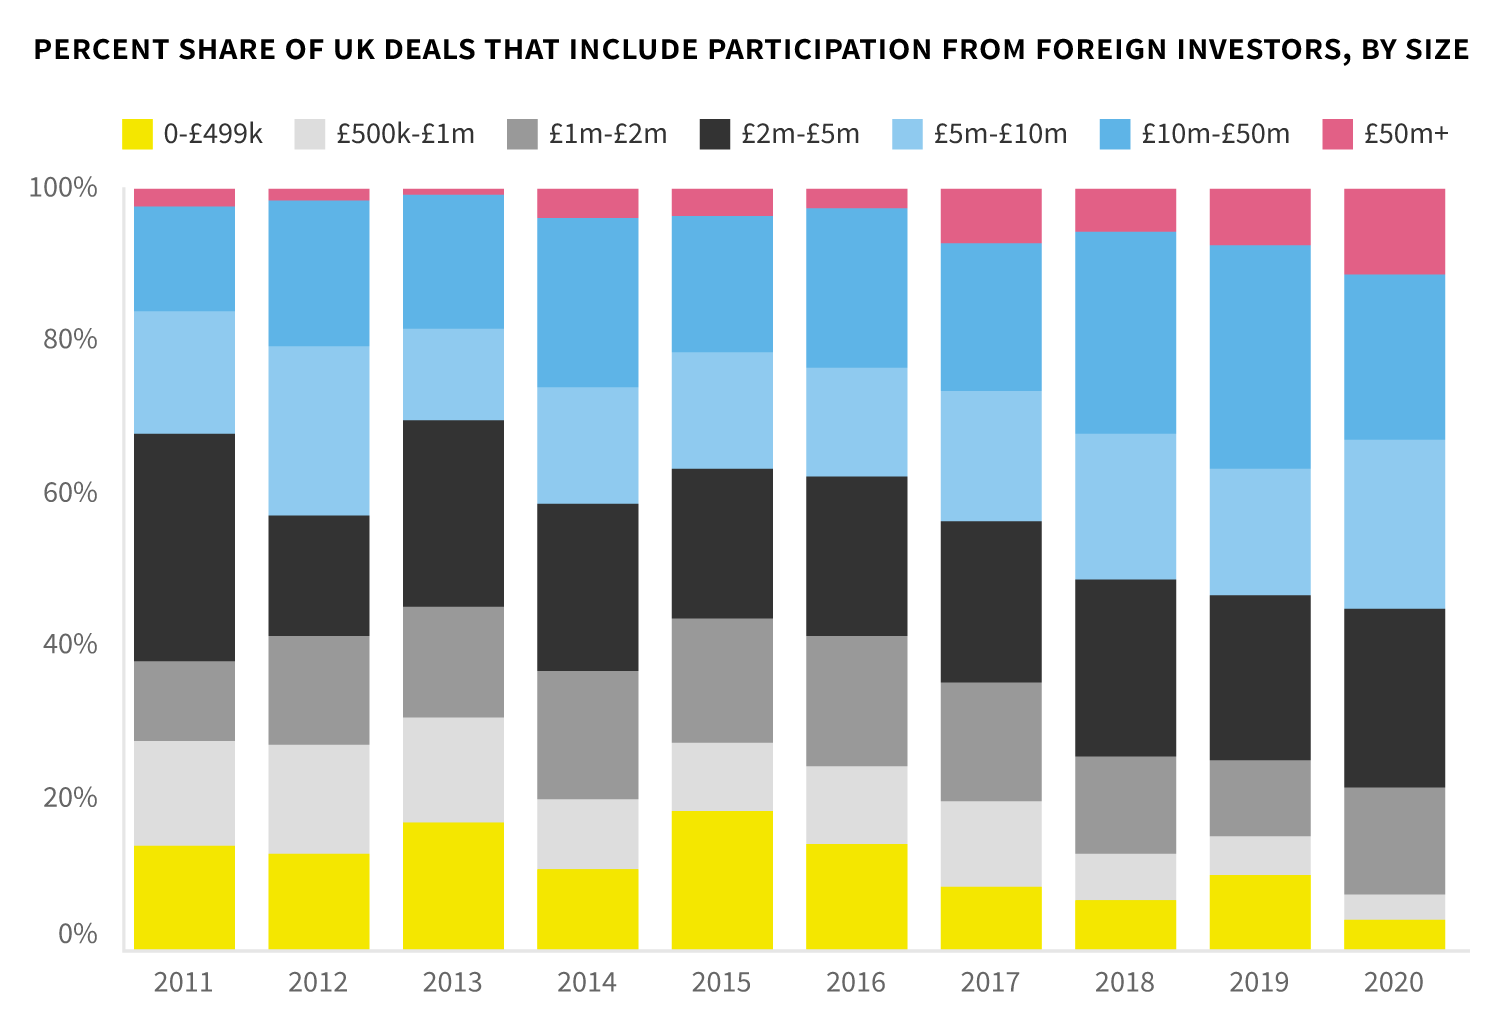 Distribution of deals by size, foreign investors